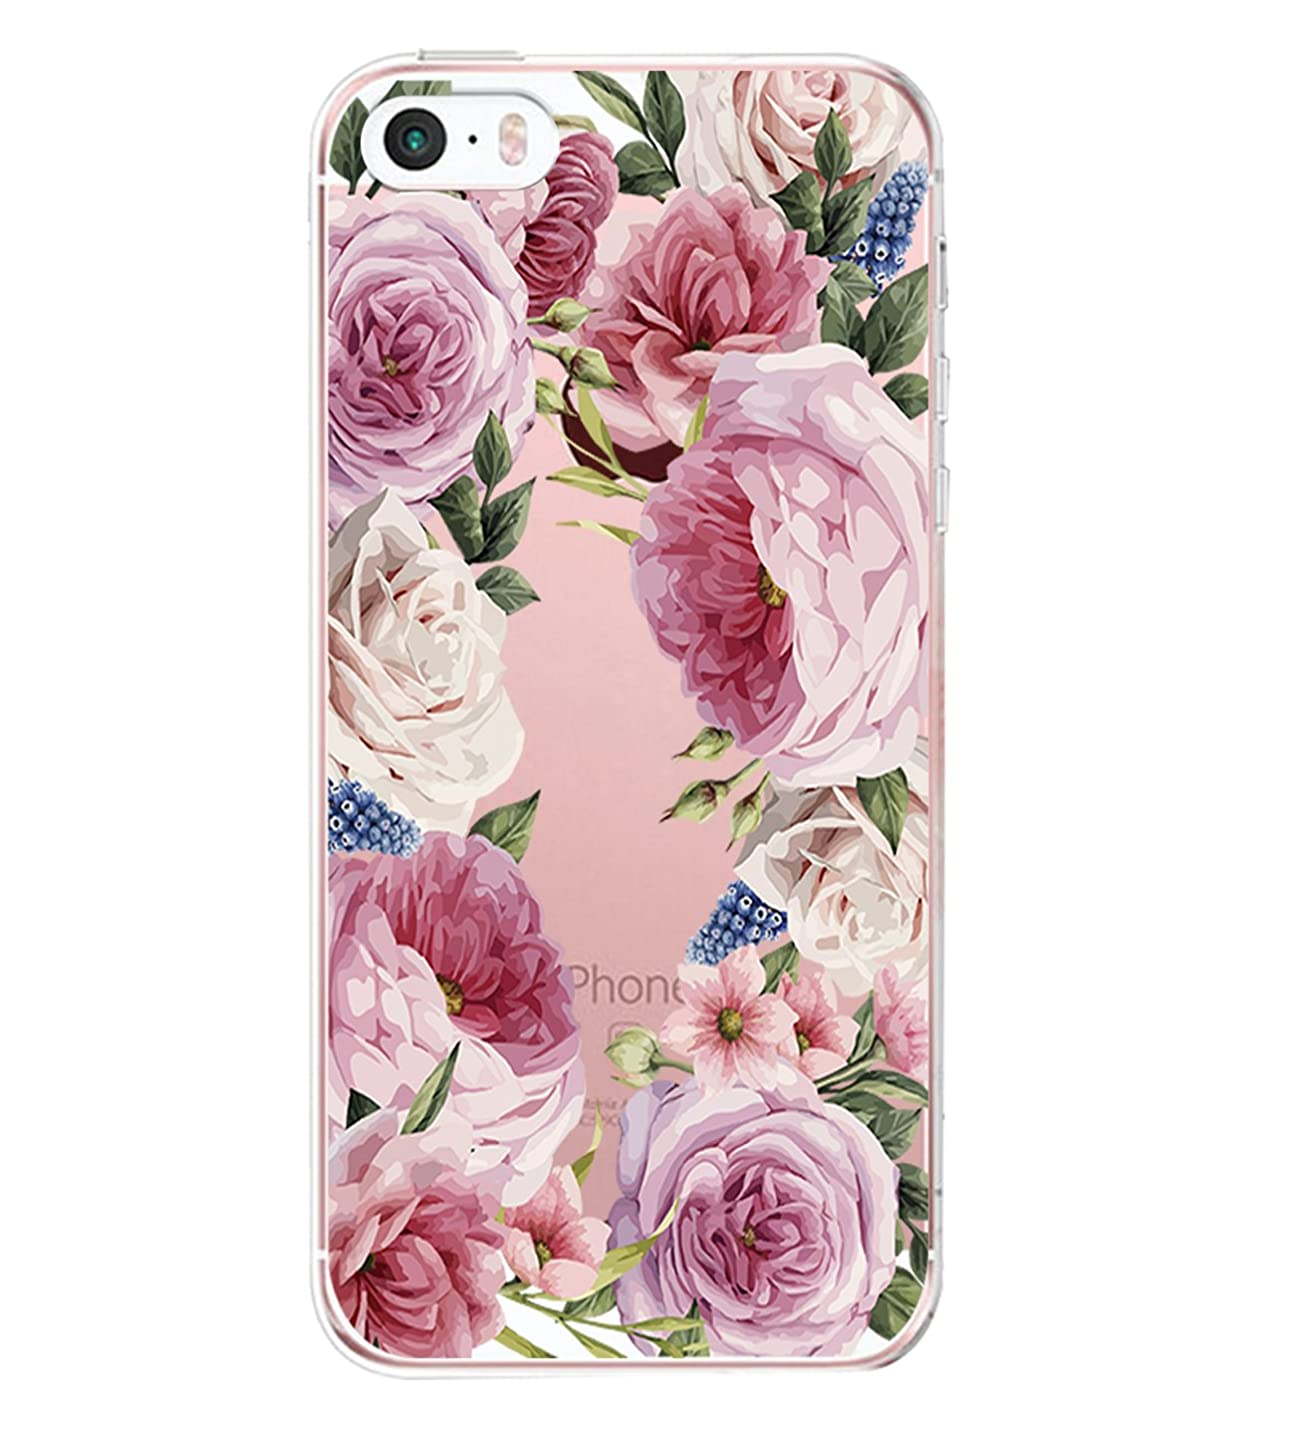 iPhone 5/5s/SE Case for Girls TPU Anti Scratch Slim Ultra Protective Clear Case